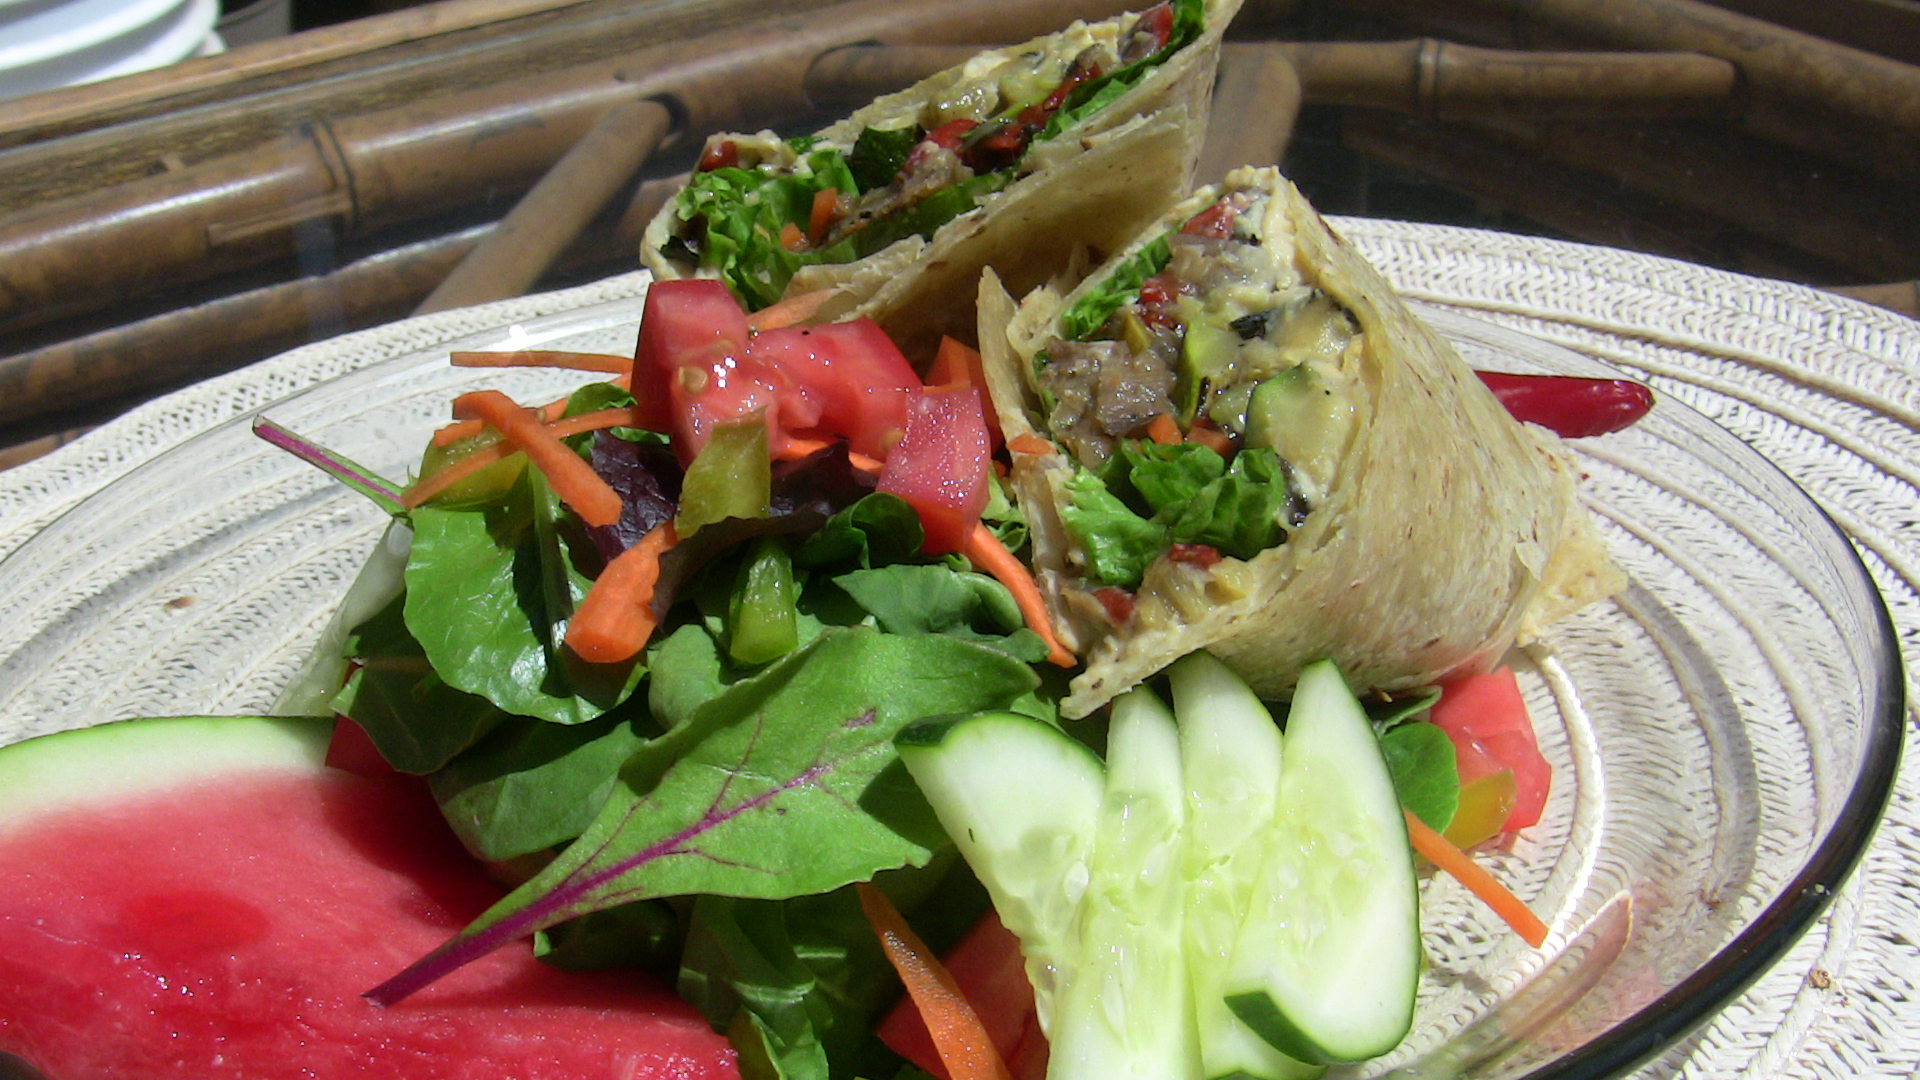 Roasted Veggie Wrap by Chef Johnna Gale